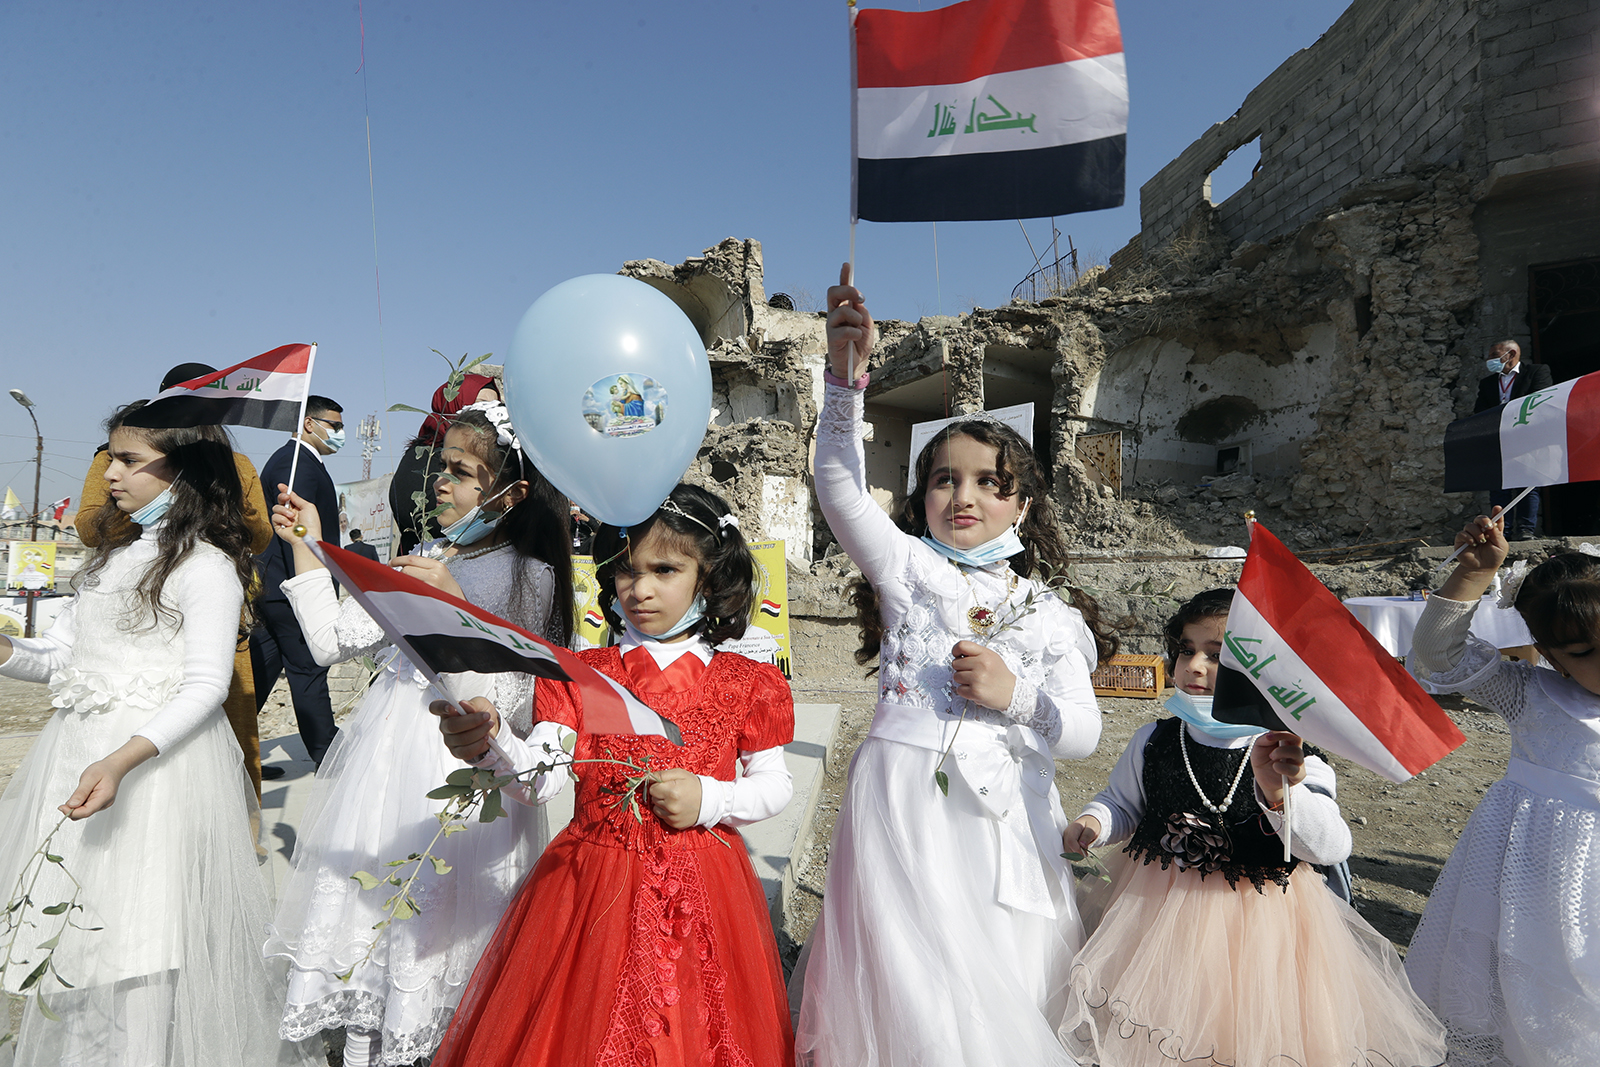 Children in festive garments wave Iraqi flags to the camera as they await the arrival of Pope Francis, who prayed for victims of war at Hosh al-Bieaa Church Square, in Mosul, Iraq, once the de-facto capital of IS, Sunday, March 7, 2021. (AP Photo/Andrew Medichini)